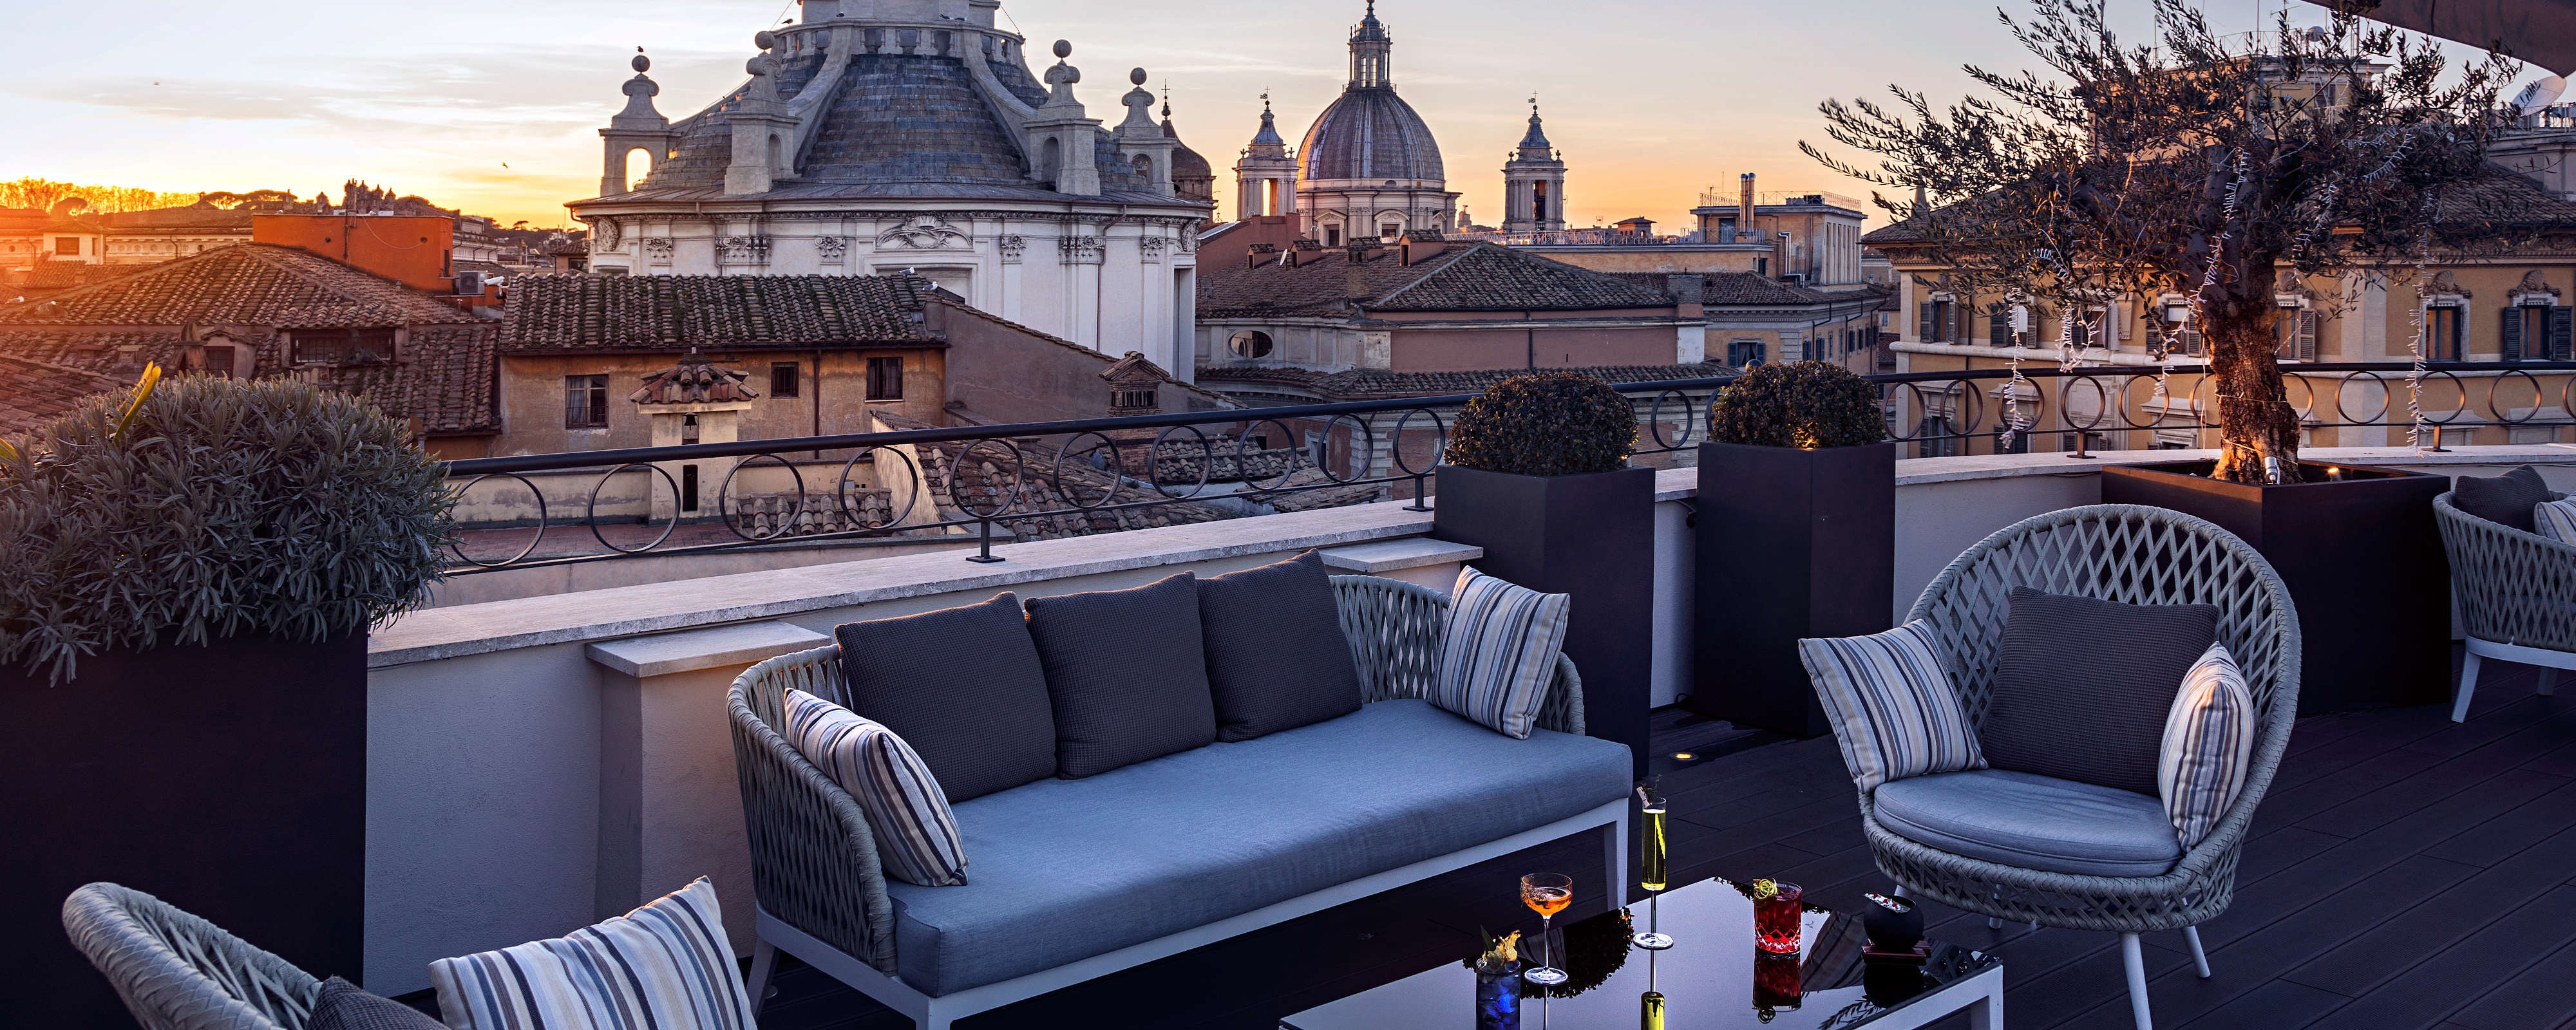 Rome Italy Boutique Hotel The Pantheon Iconic Rome Hotel